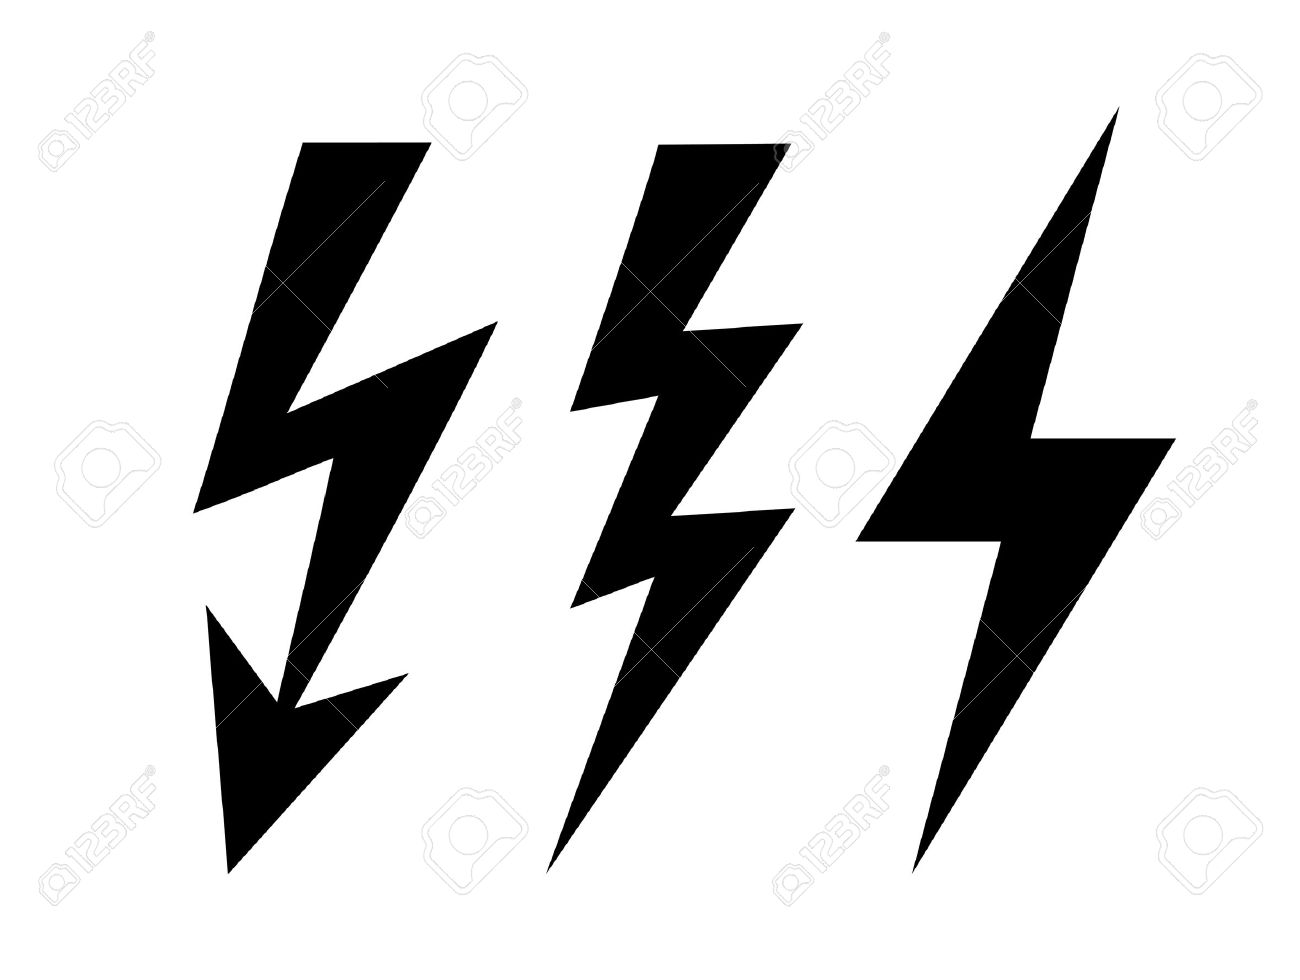 13490 lightning bolt stock illustrations cliparts and royalty free bolt icon buycottarizona Image collections